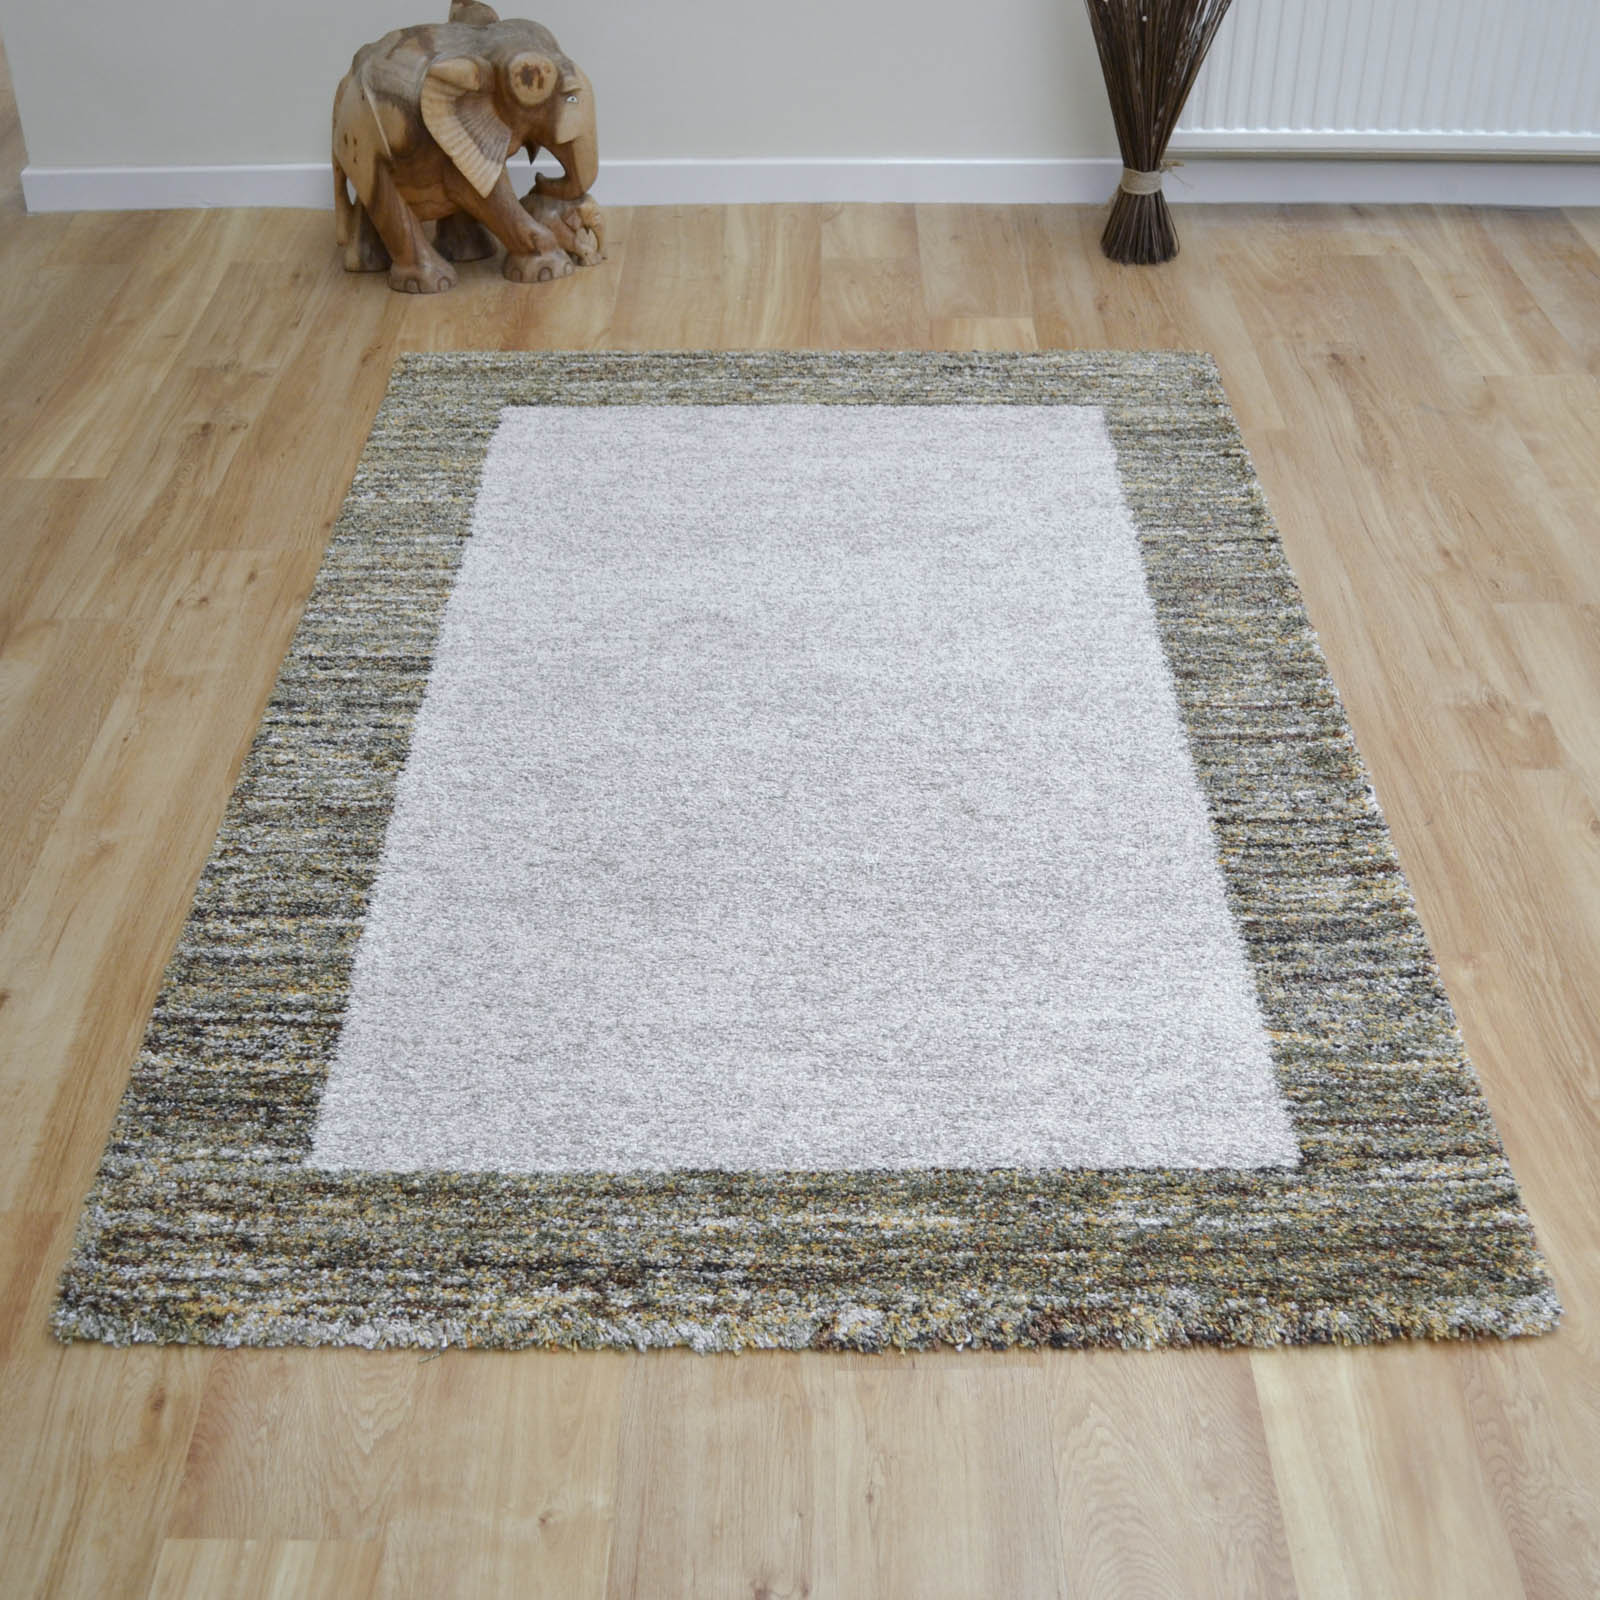 Mehari Rugs 23068 6245 in Green